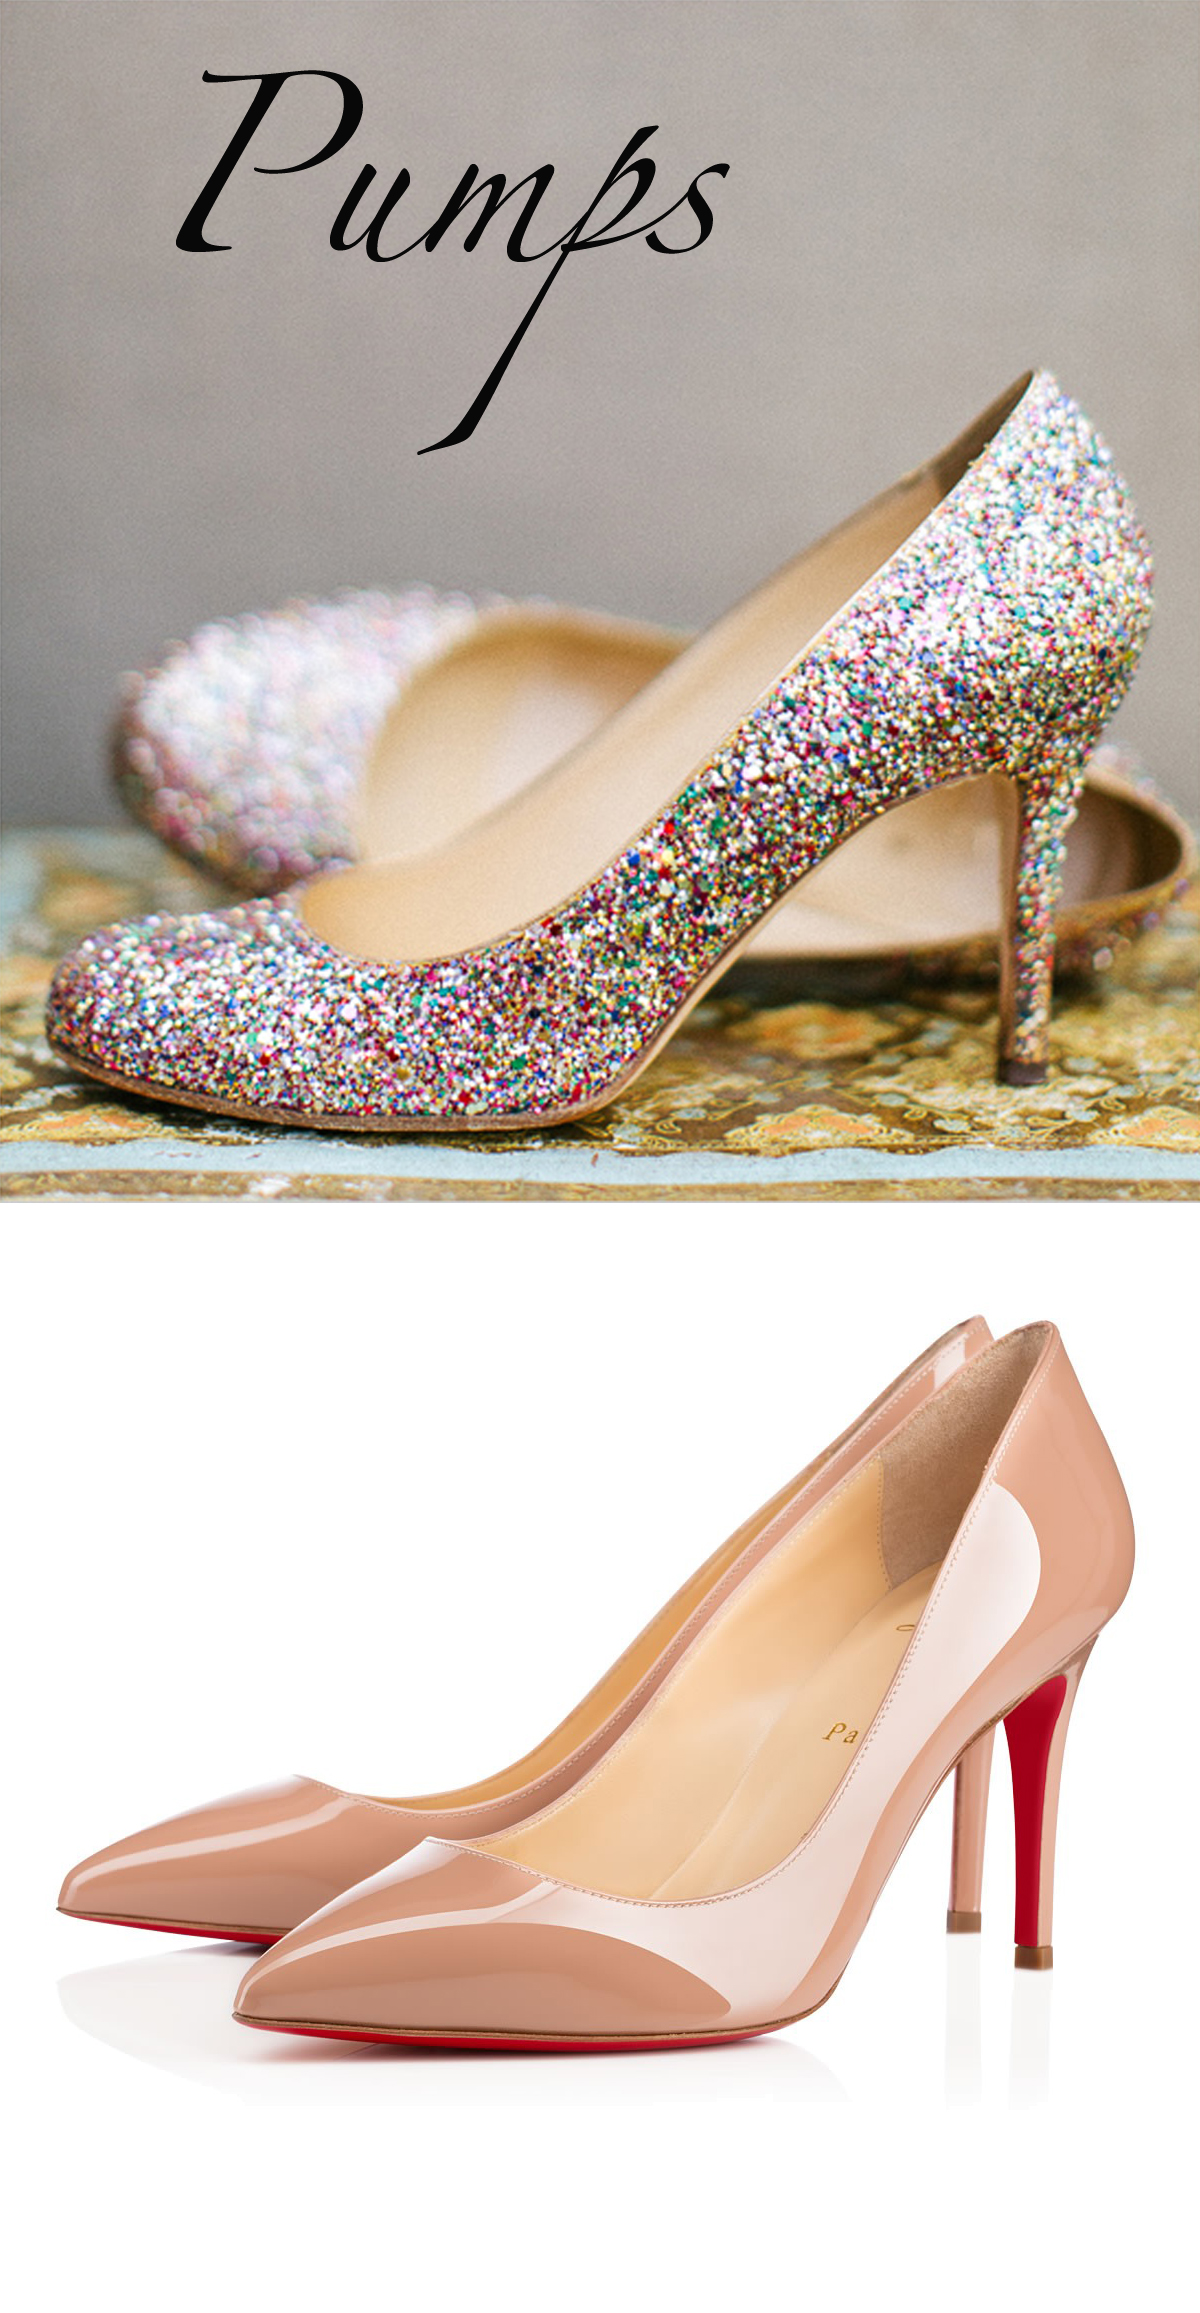 Wedding Shoes 101: Everything You Need To Know To Shop For The ...